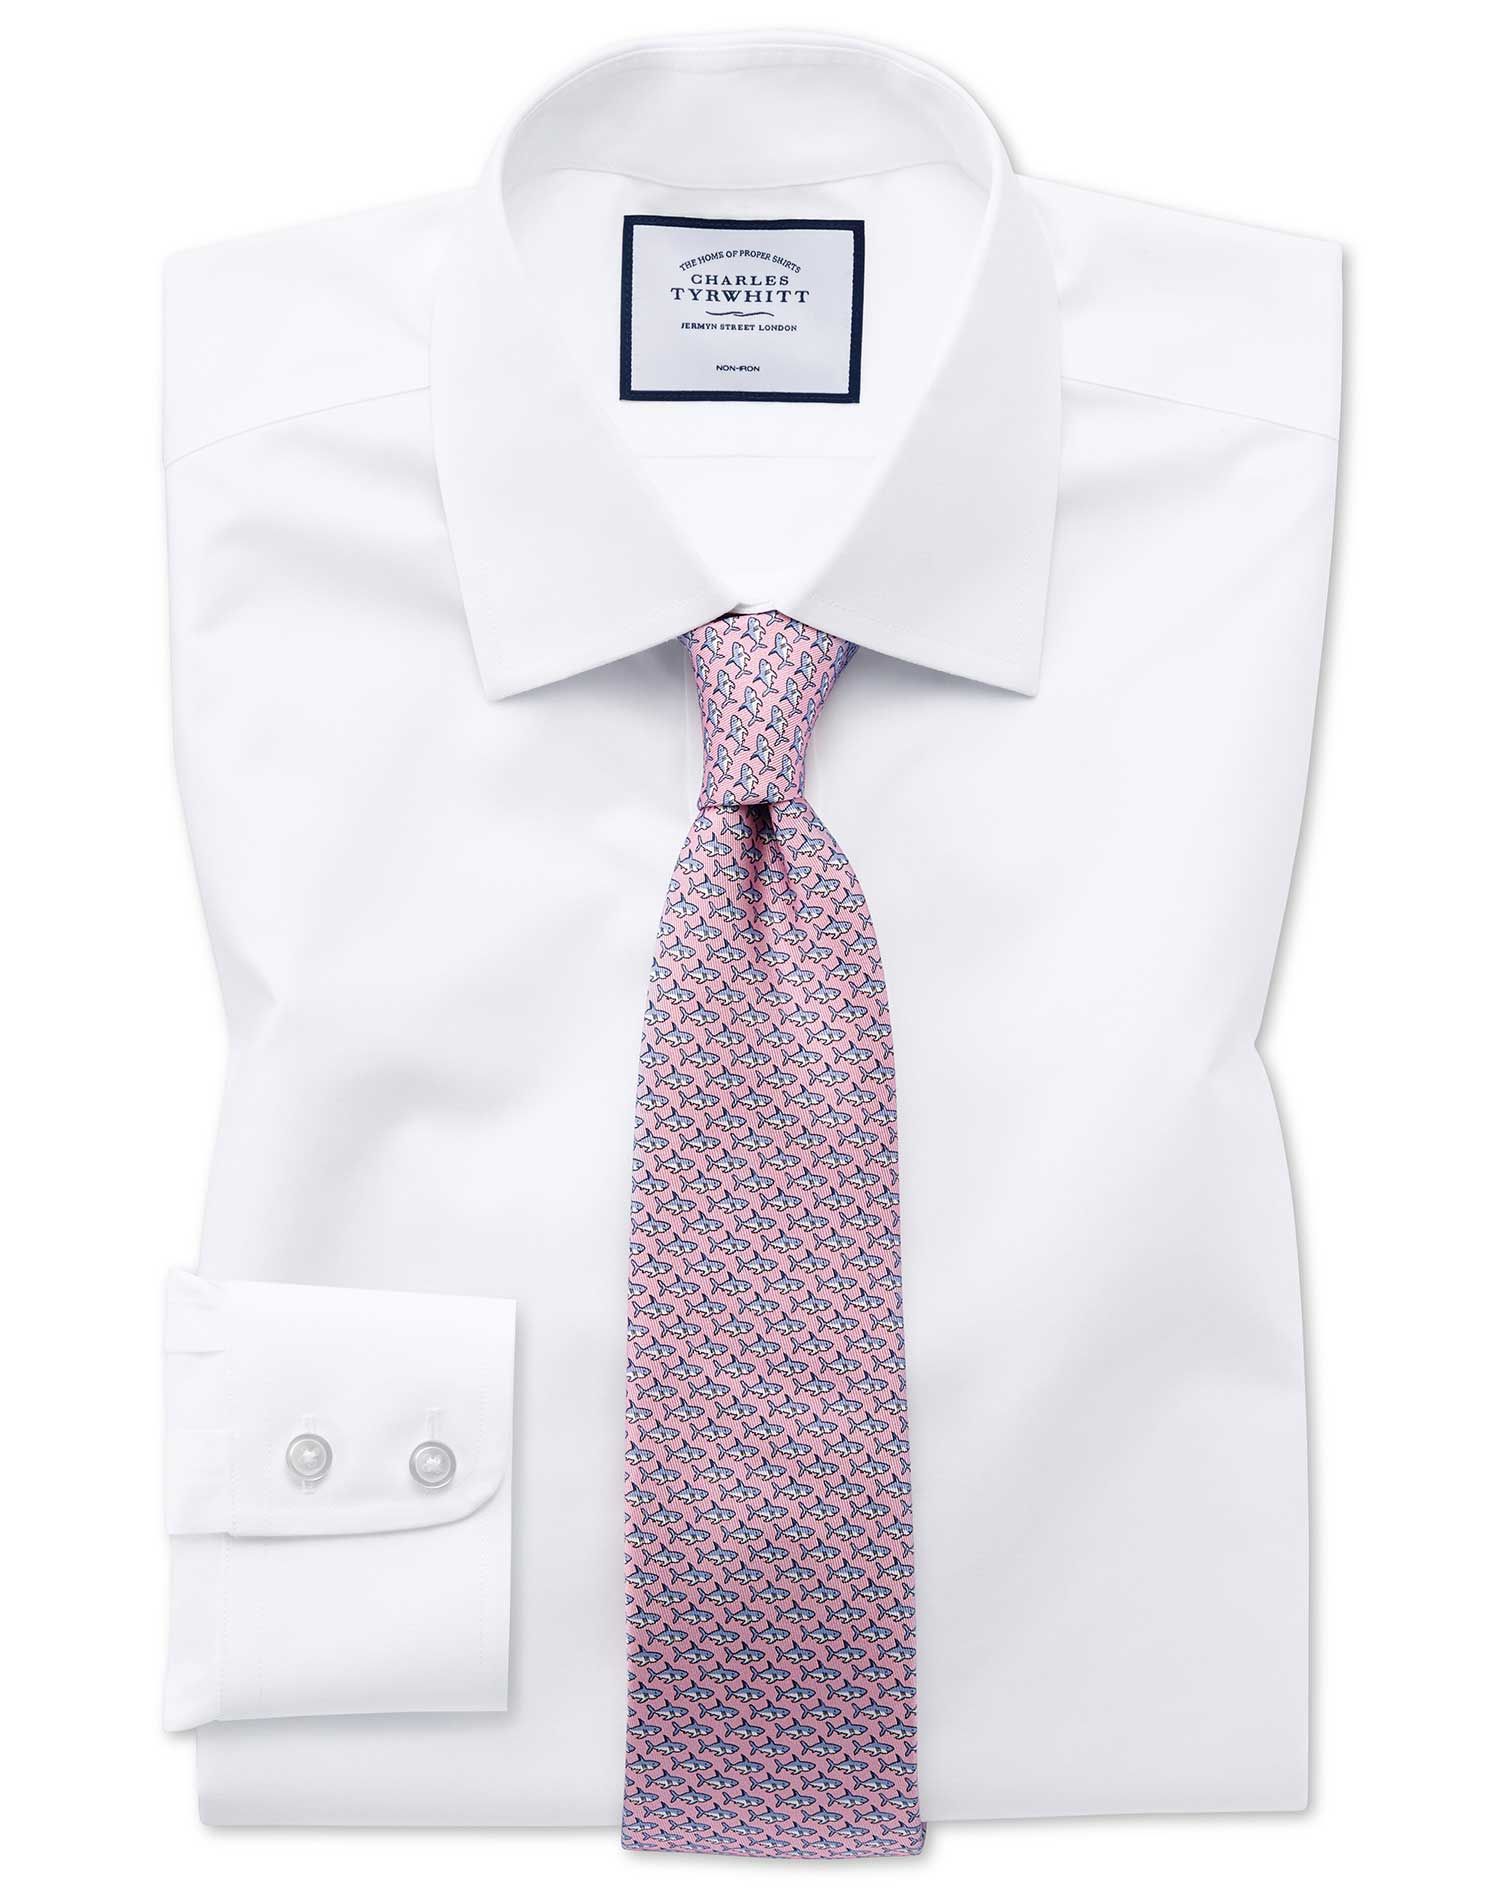 Slim Fit Non-Iron Poplin Shirt - Charles Tyrwhitt. You just have to scare this shirt with an iron to get the wrinkles out